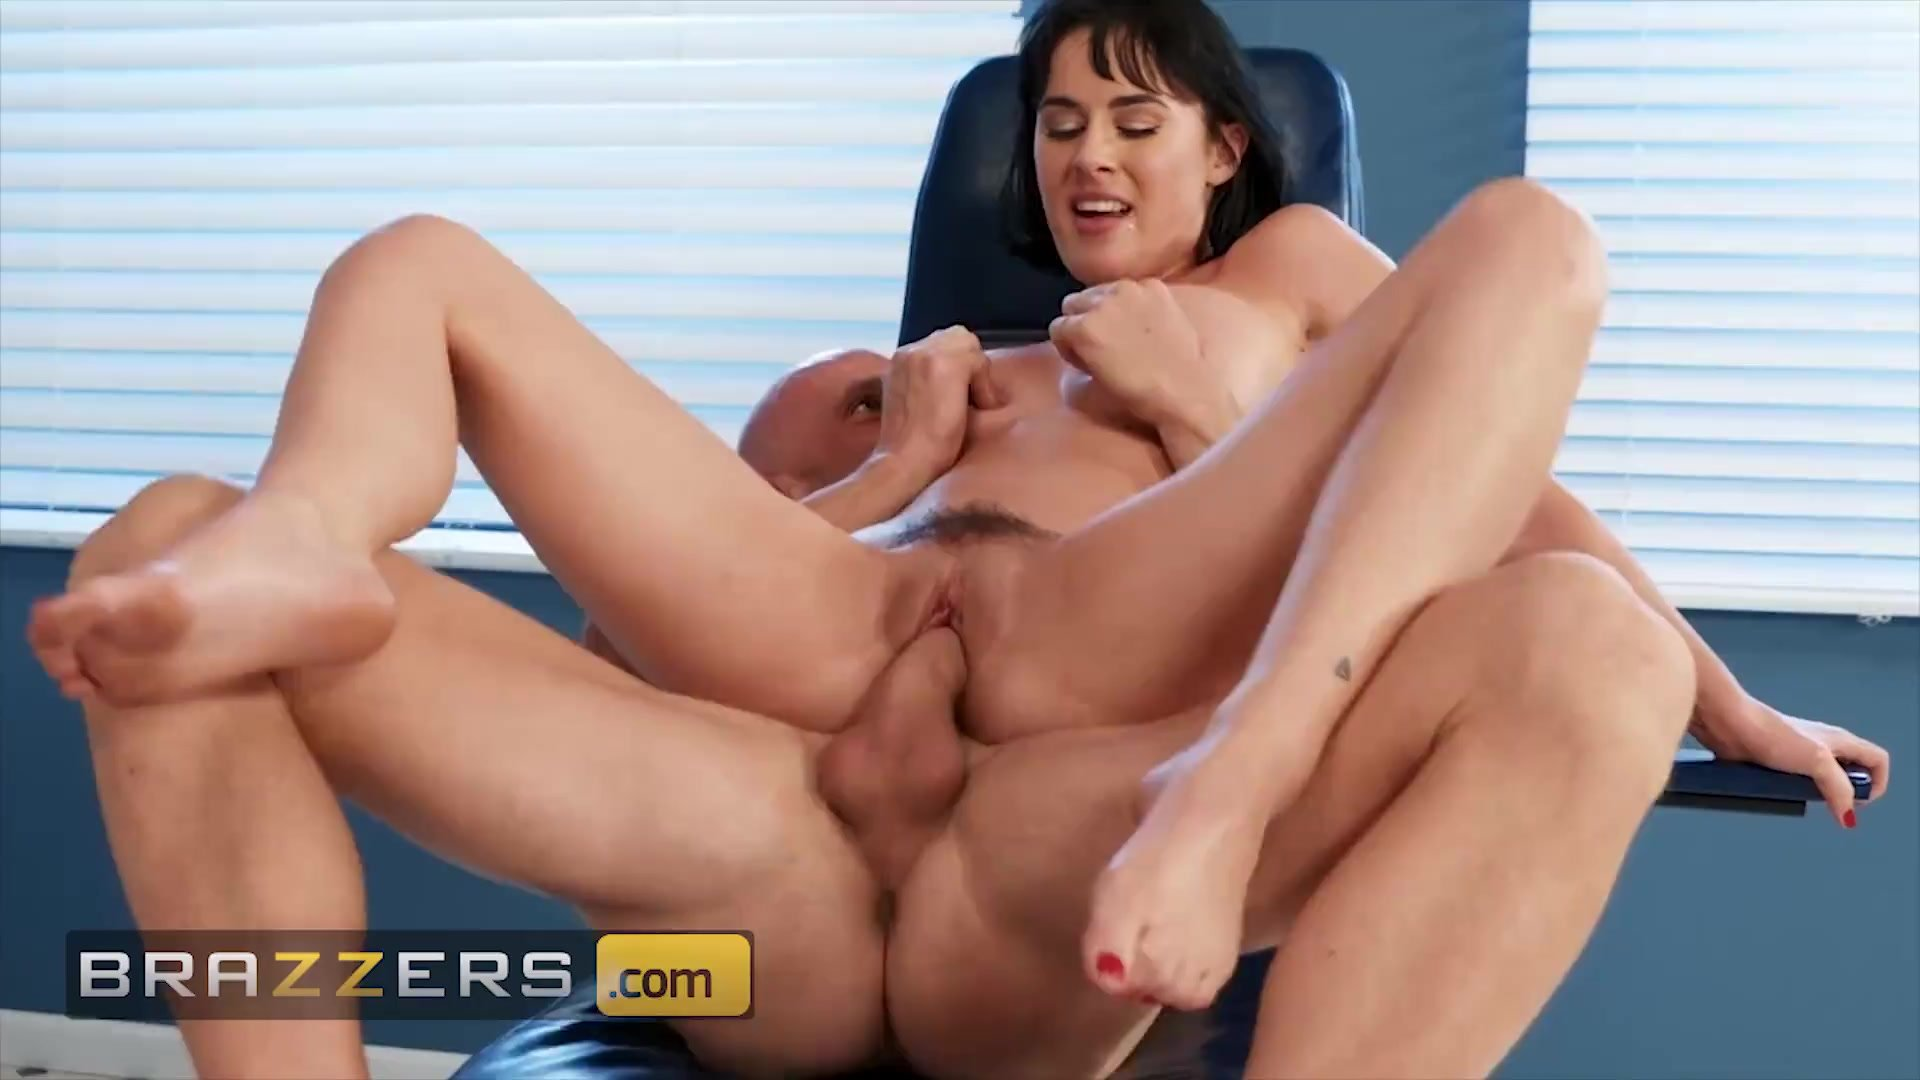 Fake boobs/compilation brazzers of women with